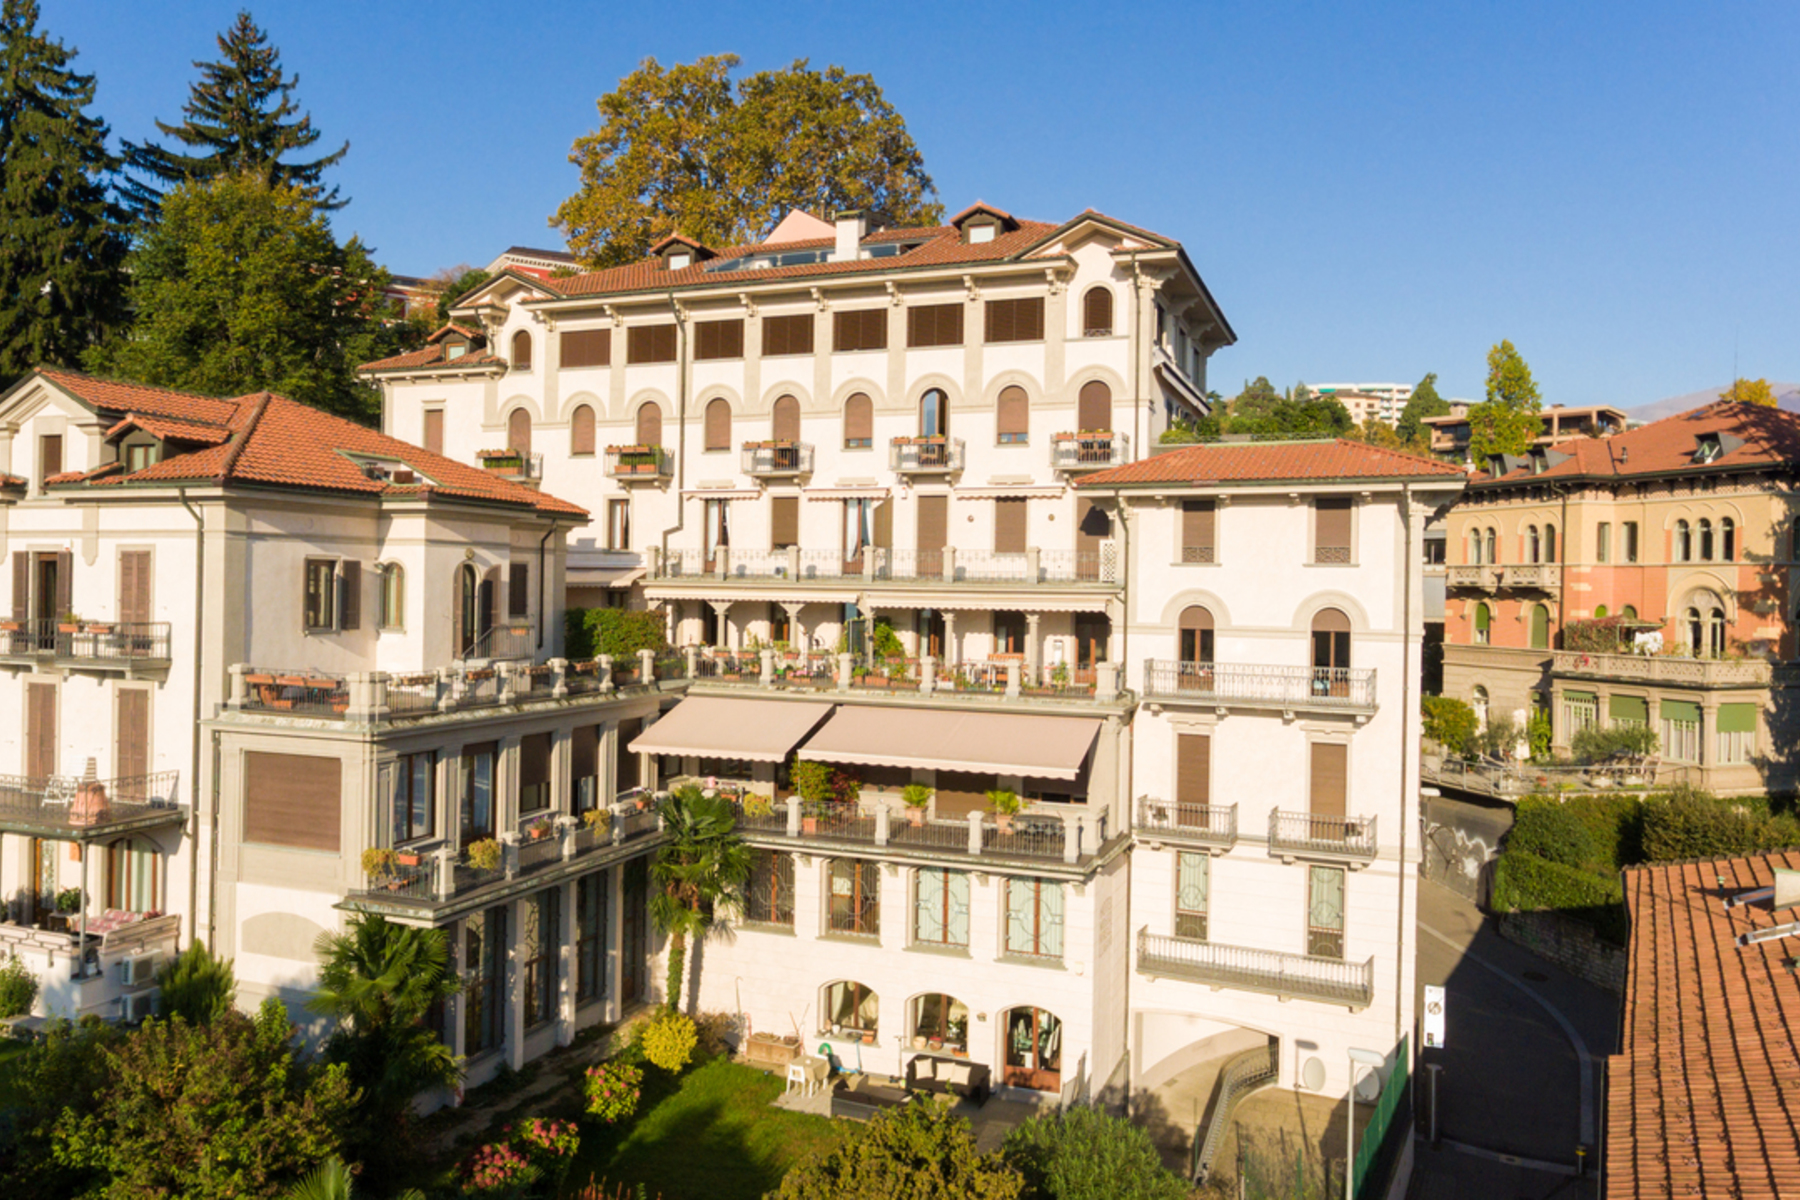 アパート のために 売買 アット Elegant apartment in the center Lugano, Lugano, Ticino, 6900 スイス